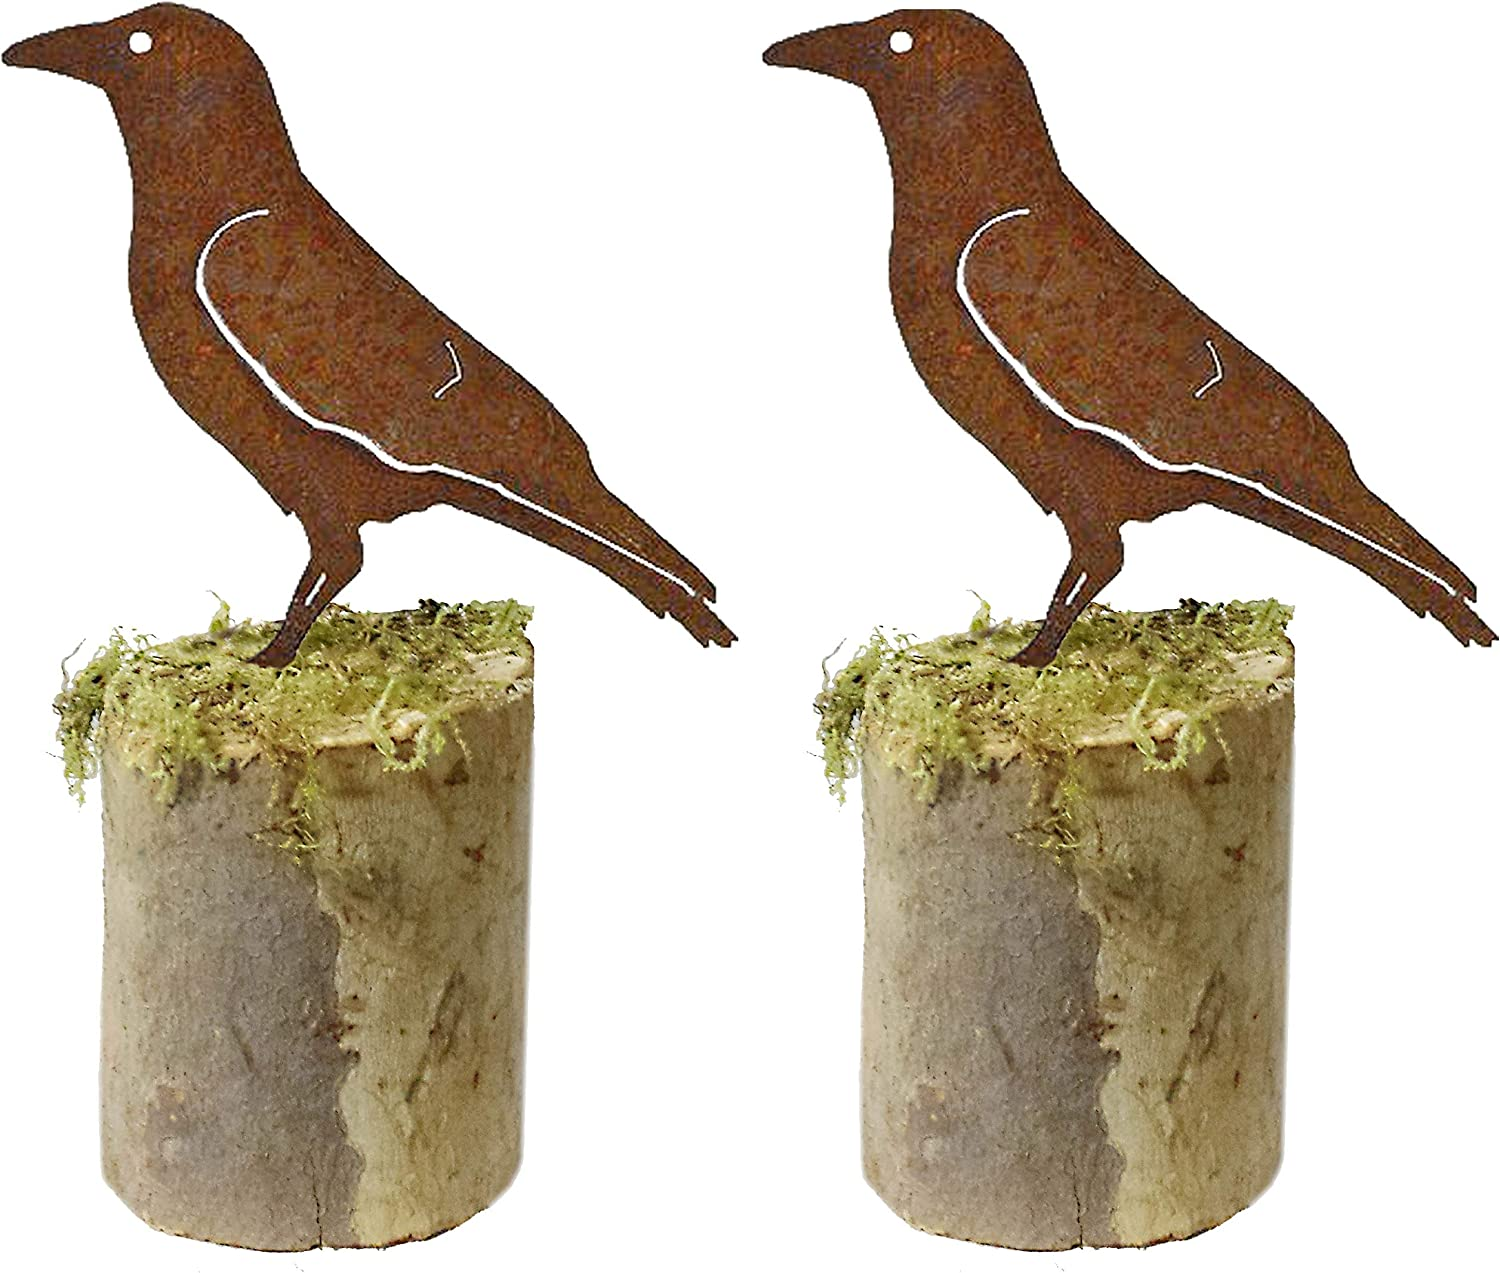 California Home and Garden CH505-2 Set of 2 Metal Crow Silhouettes 9 Inch Tall, 9-Inch x 12-Inch Wide, Rustic Look Artwork